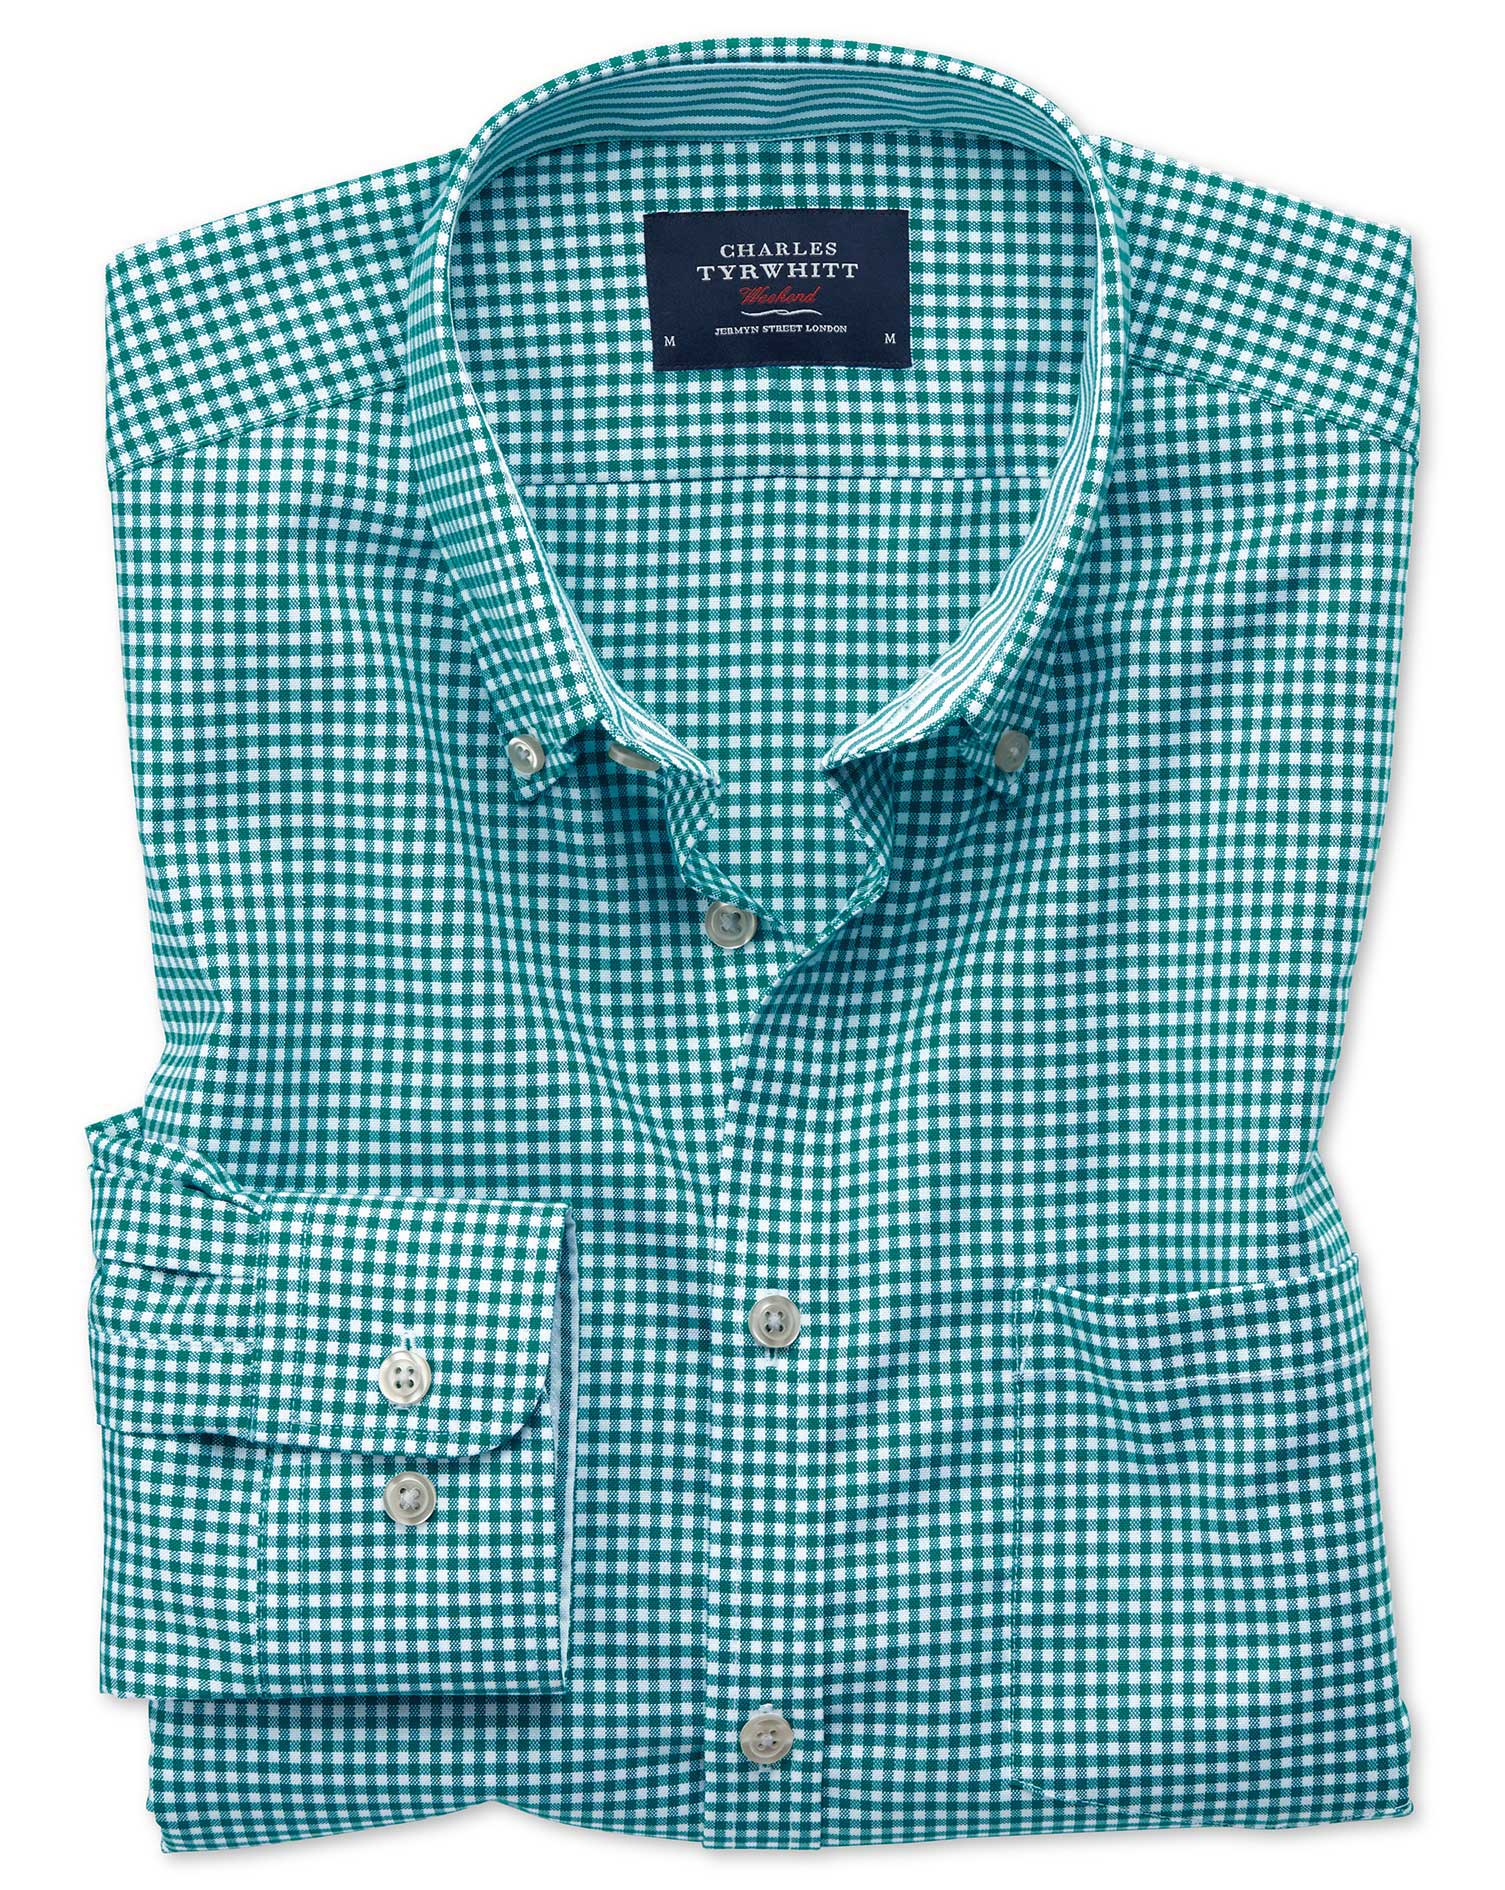 Slim Fit Button-Down Non-Iron Oxford Gingham Green Cotton Shirt Single Cuff Size XL by Charles Tyrwh